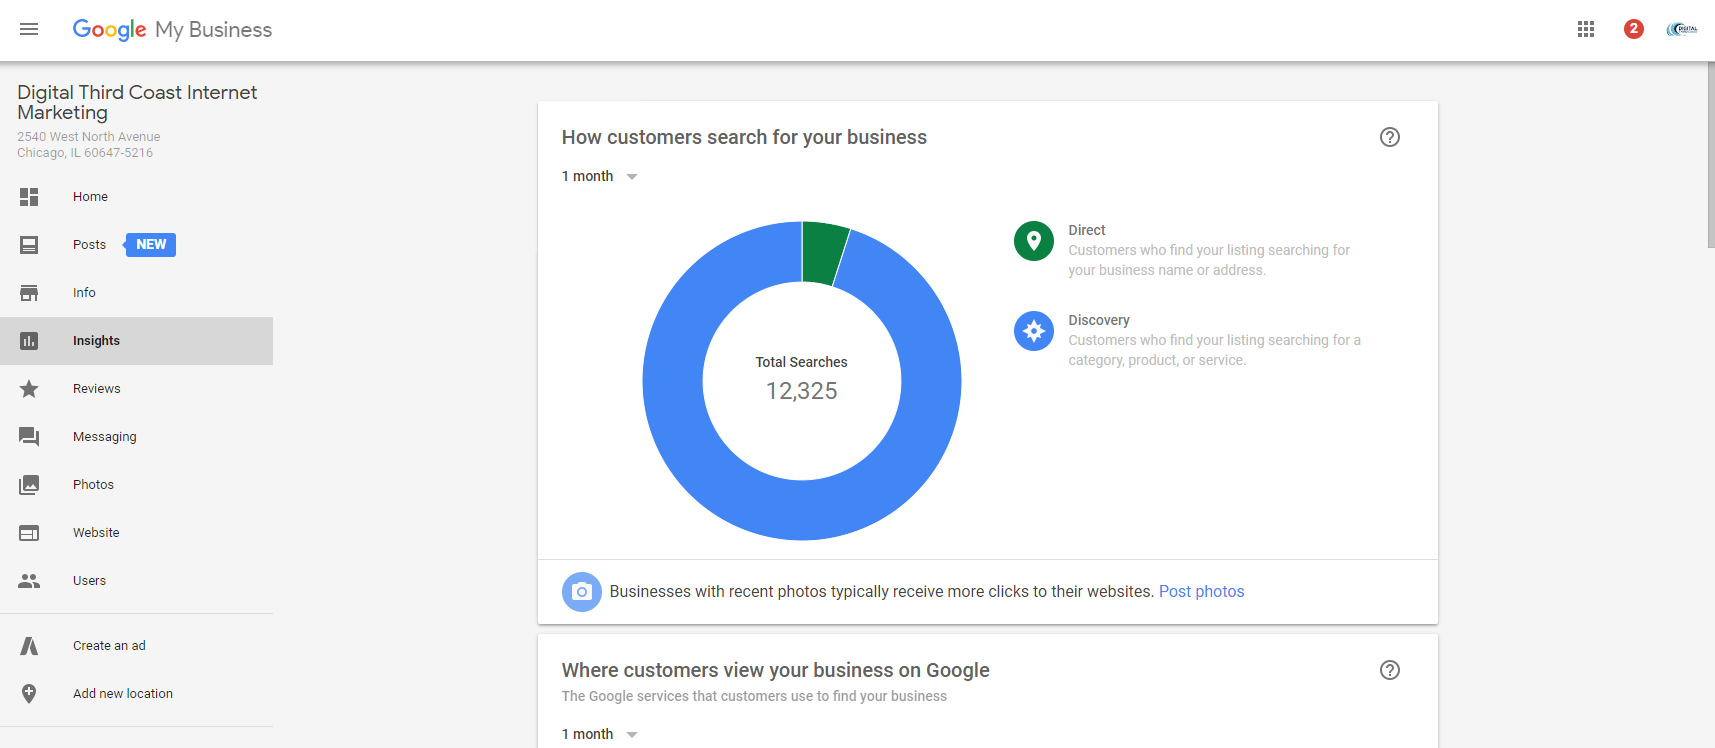 Image of the Insights section of Google My Business showing graphs and statistics